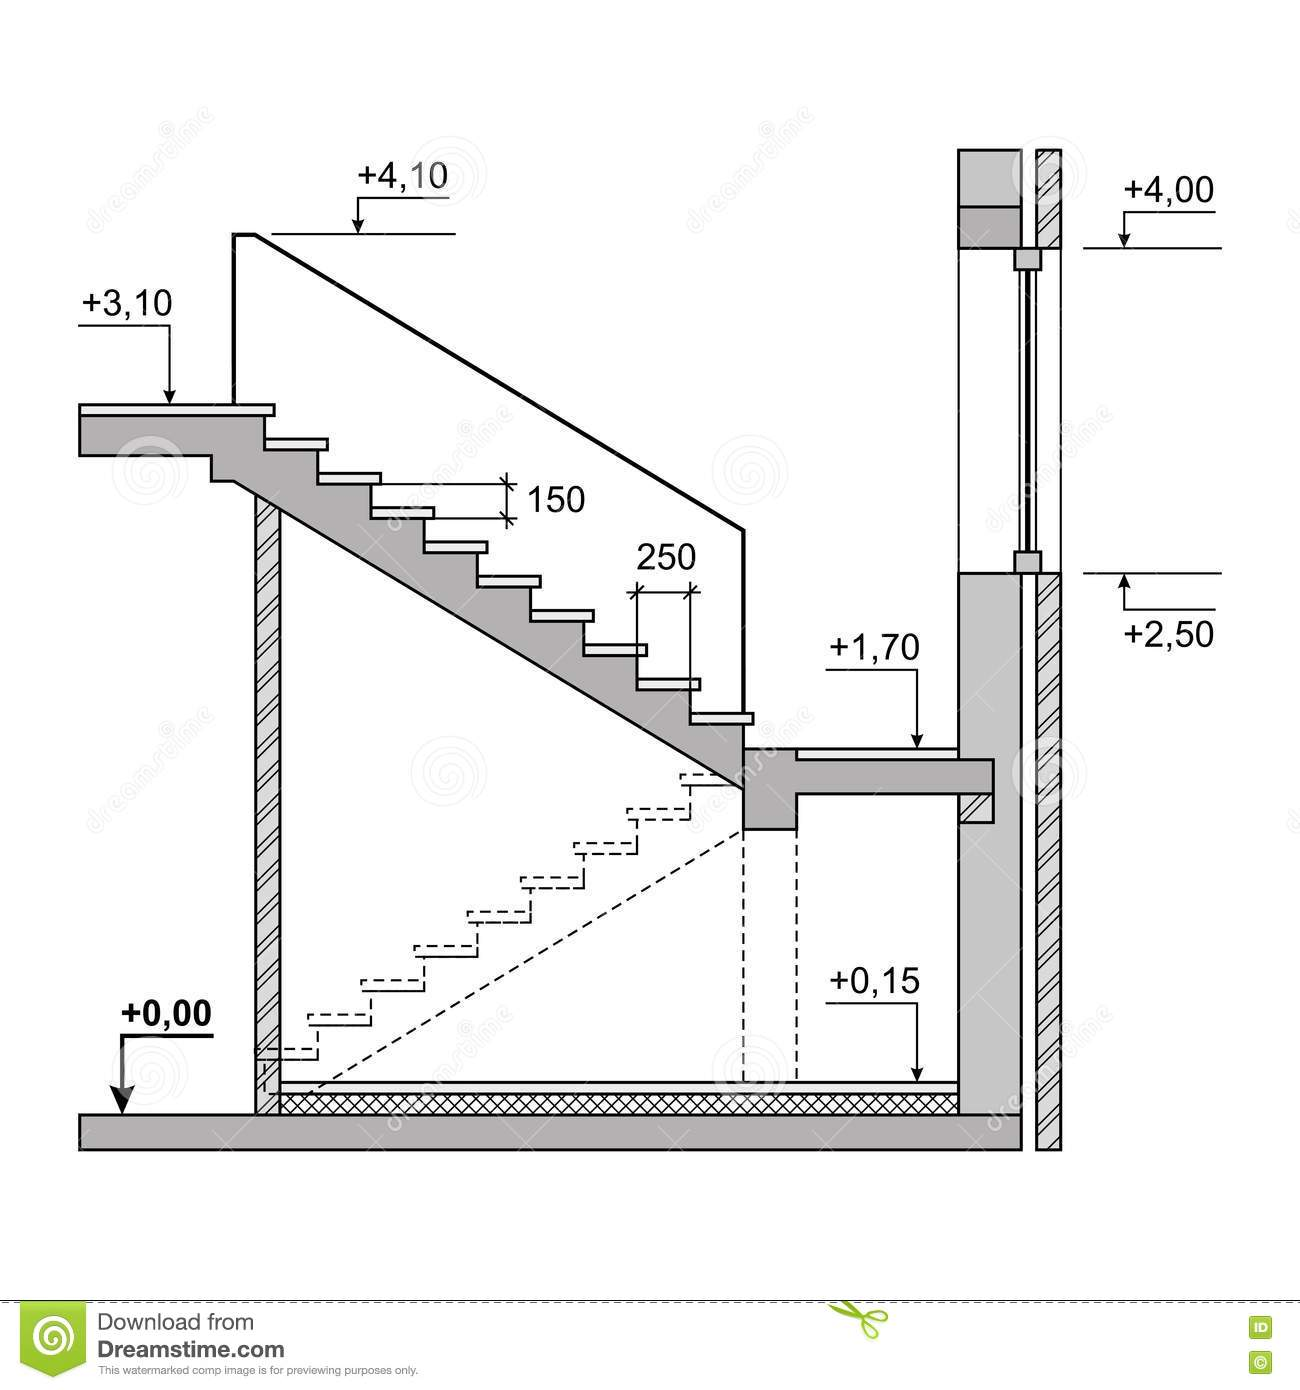 entwurfs projekt treppe auf wei em hintergrund vektor vektor abbildung illustration von. Black Bedroom Furniture Sets. Home Design Ideas